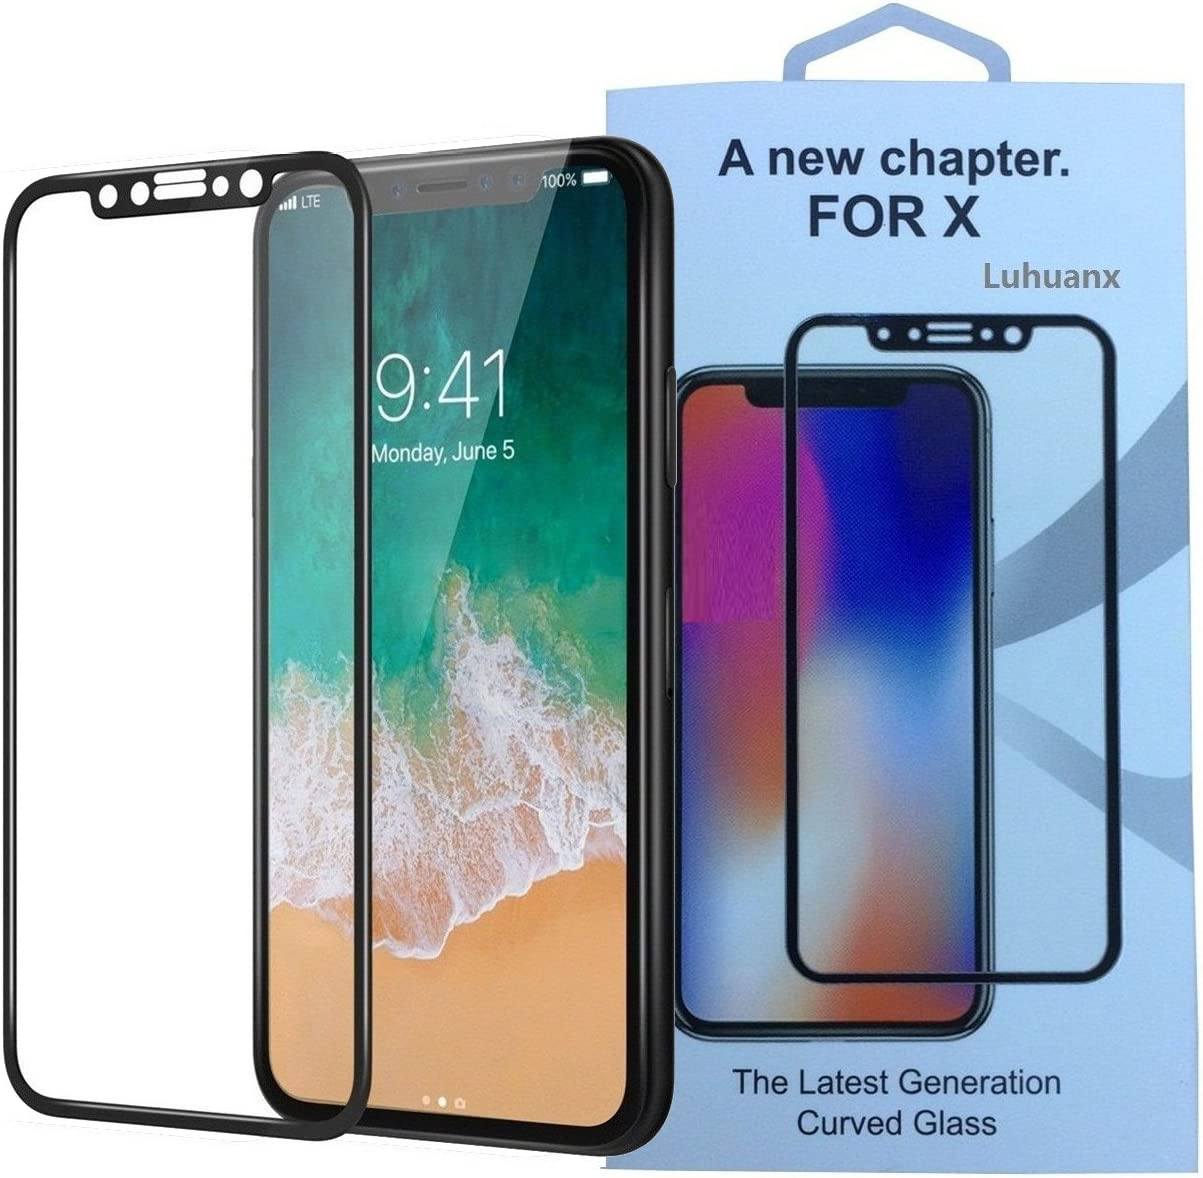 XHC Screen Protector Film 25 PCS Scratchproof 11D HD Full Glue Full Curved Screen Tempered Glass Film for Galaxy A9 Color : Black Black Tempered Glass Film // A9s // A9 Star 2018